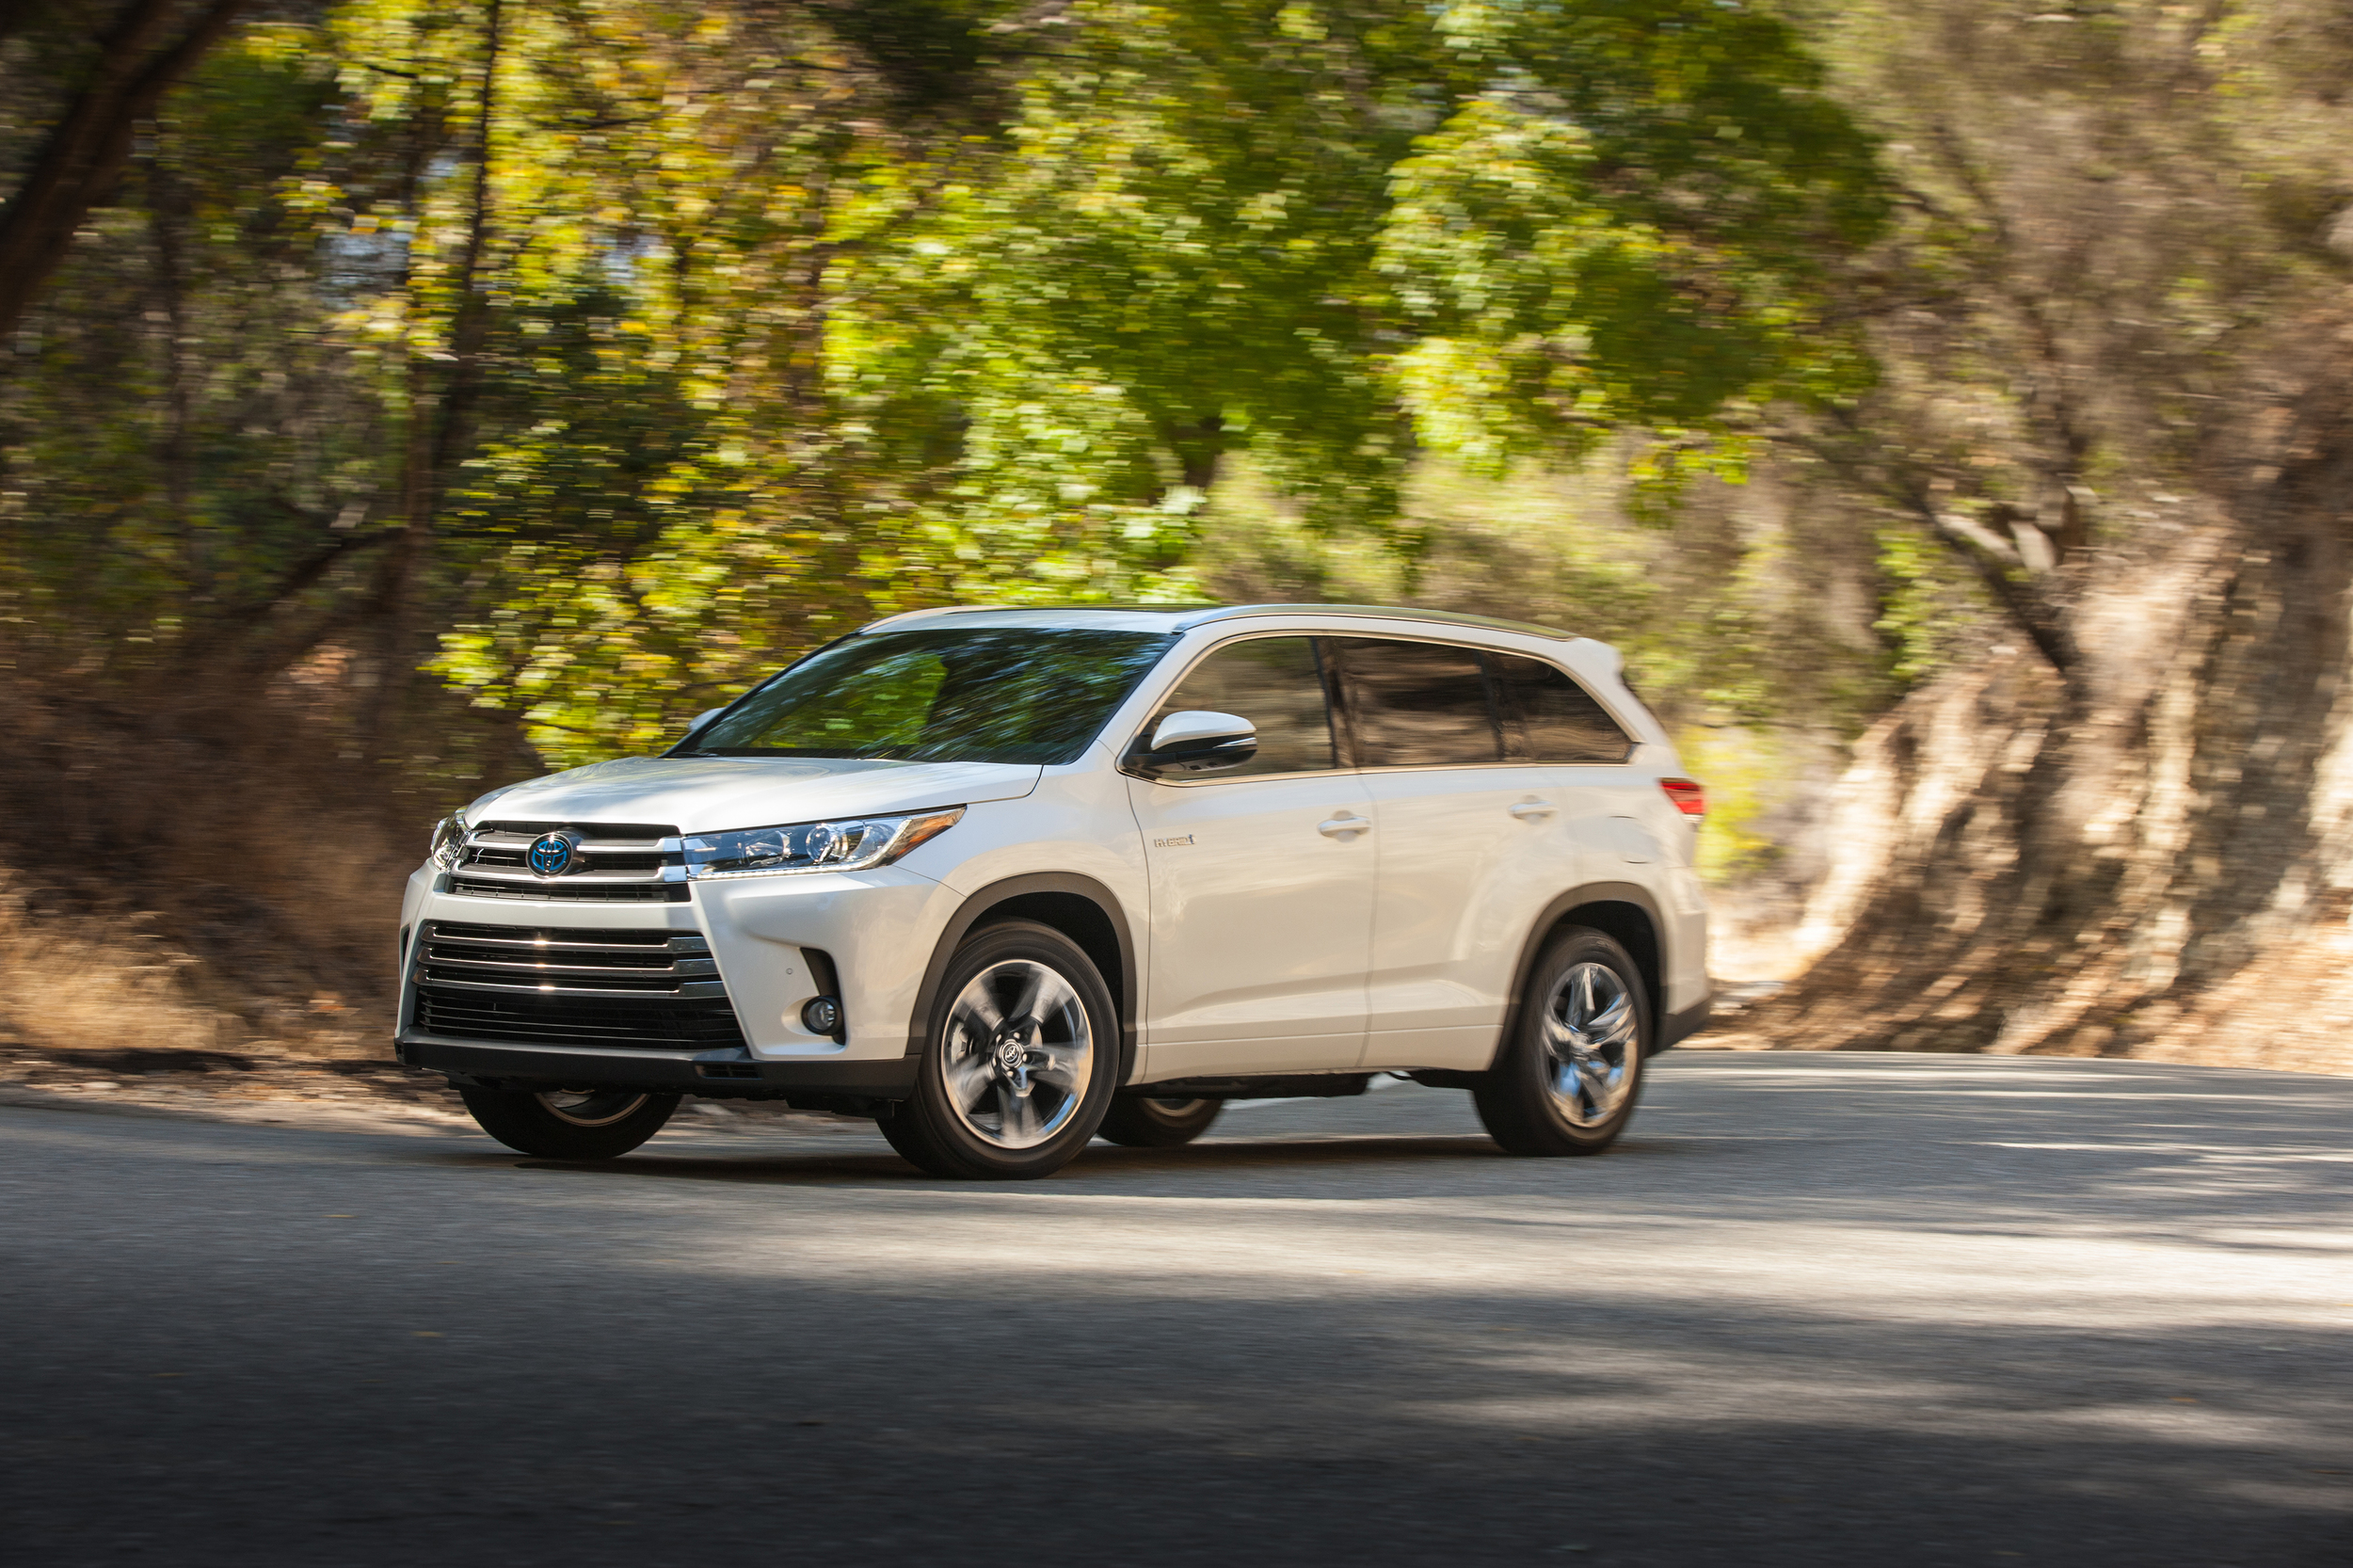 2017 highlander will be first na toyota to get stop